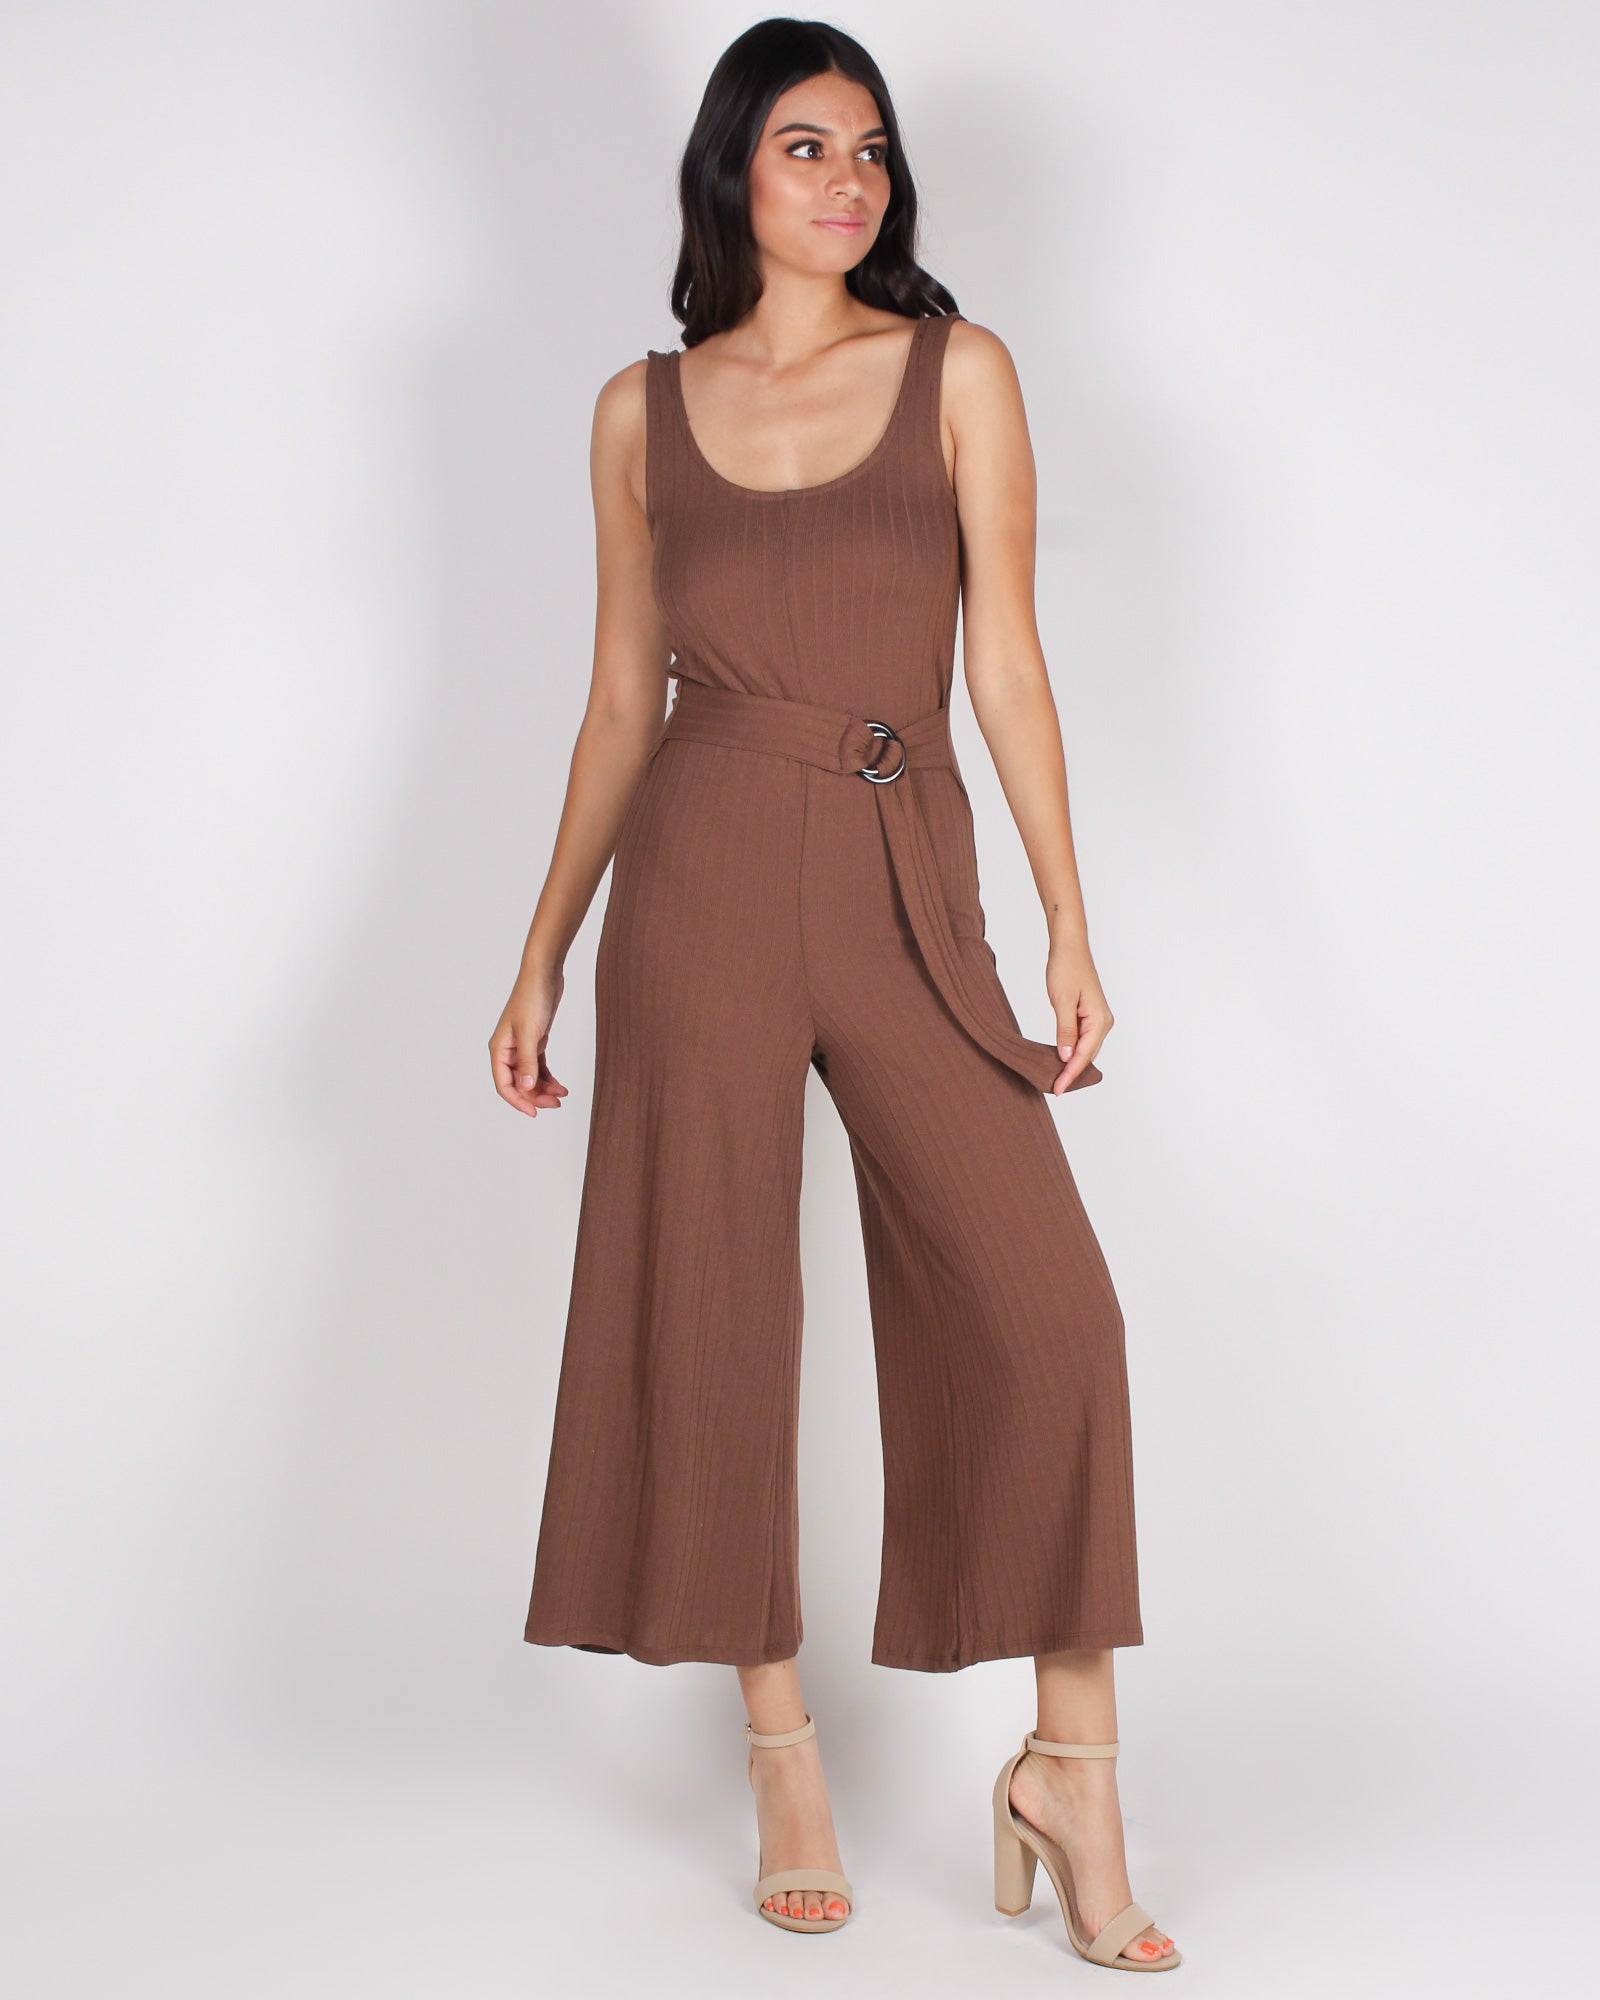 Fashion Q Shop Q Today Matters Most Jumpsuit (Mocha) HMP30840